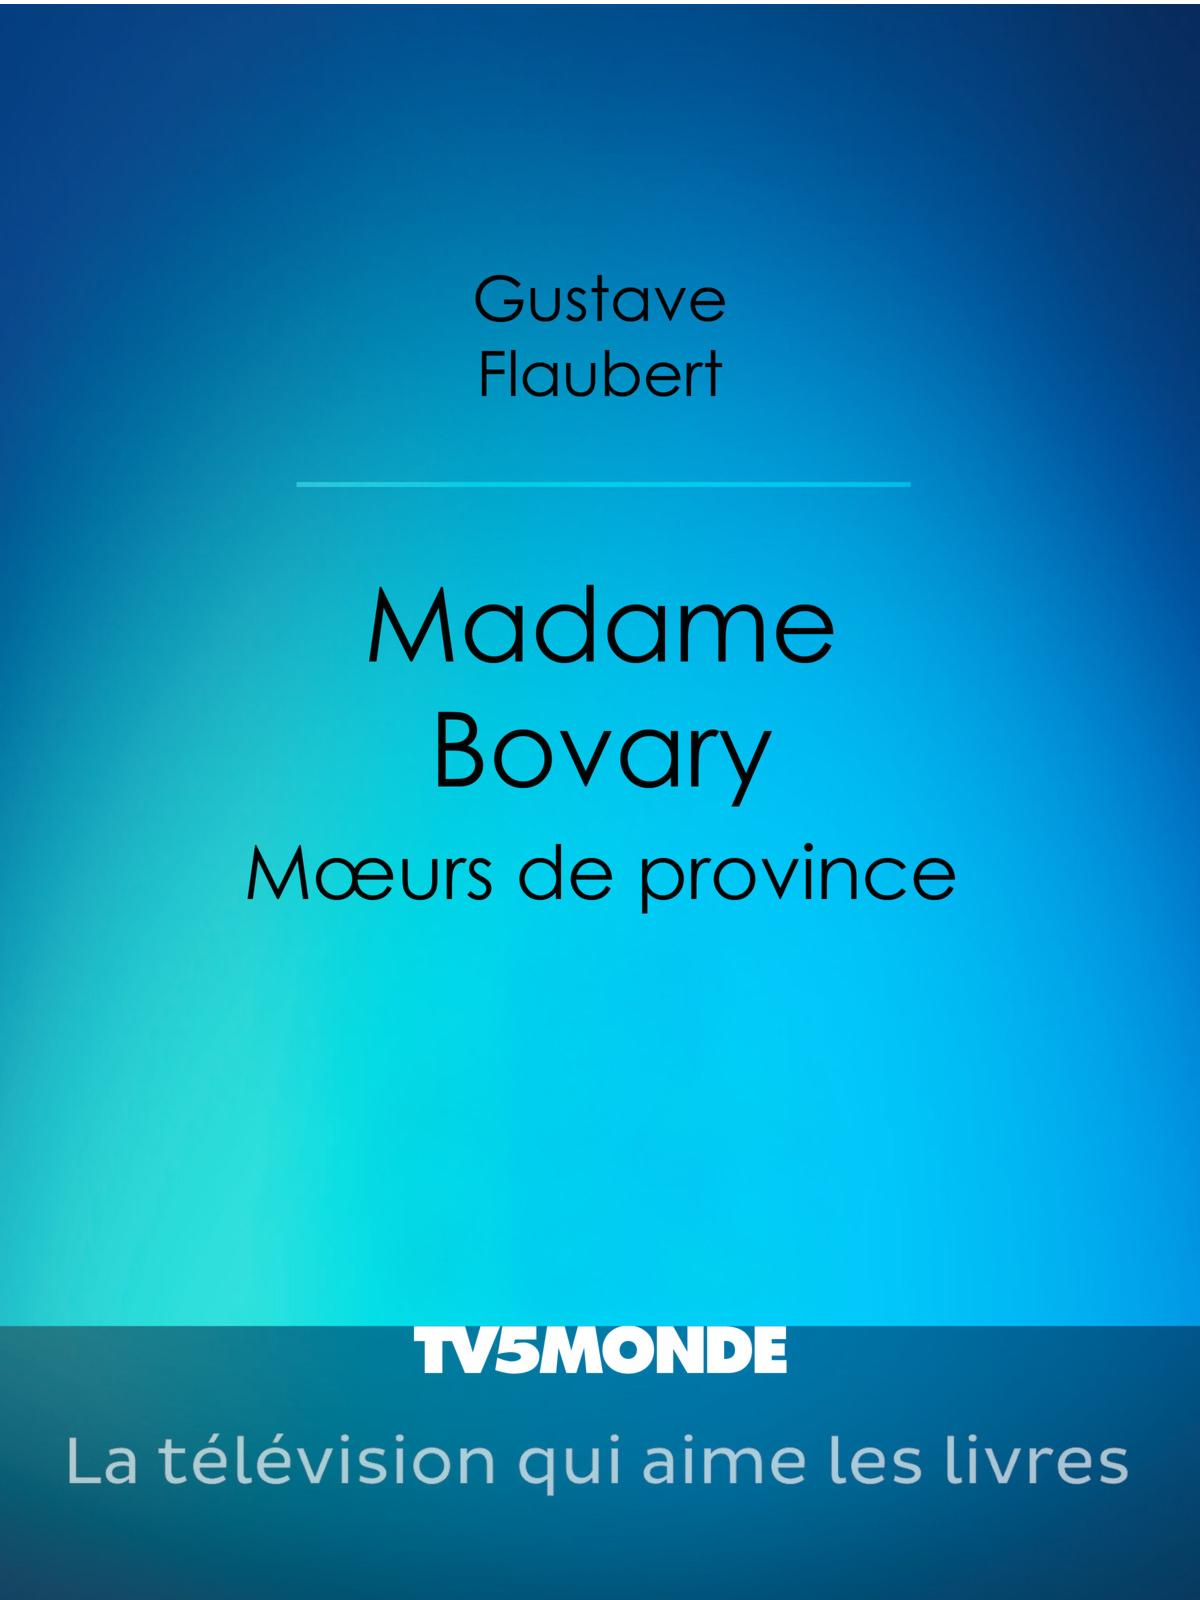 100% high quality lace up in many fashionable Calaméo - Flaubert Madame Bovary 44